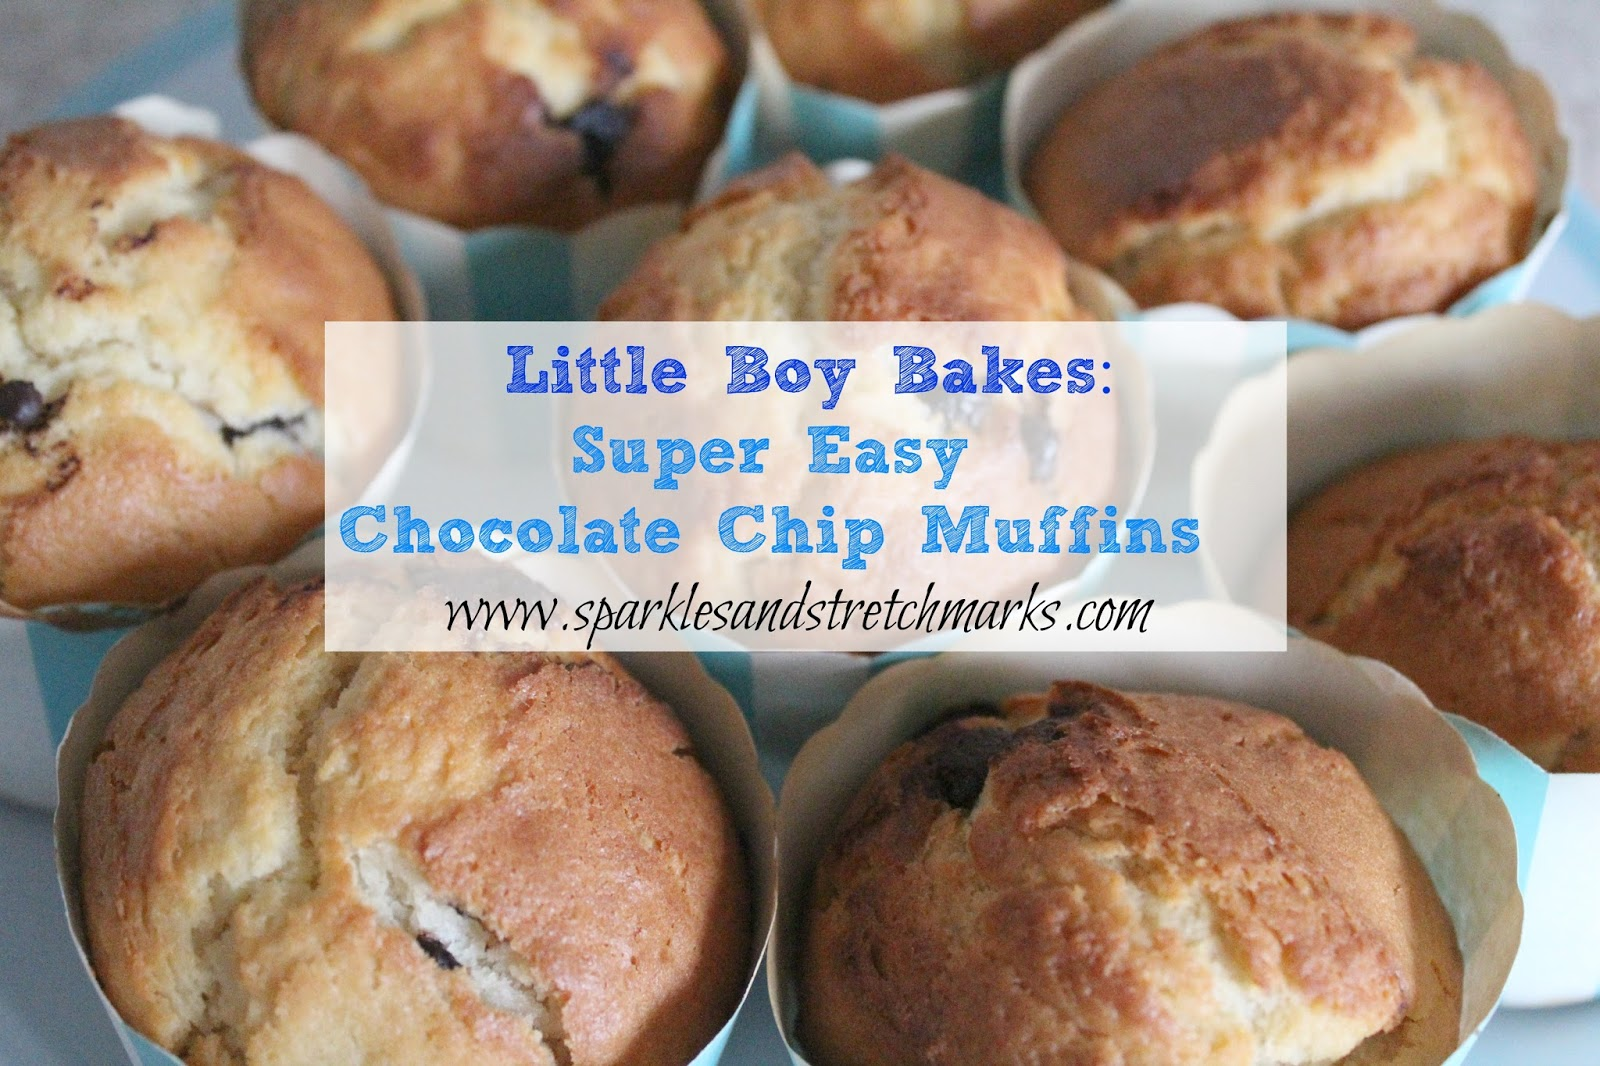 Little Boy Bakes Chocolate Chip Muffins Sparkles And